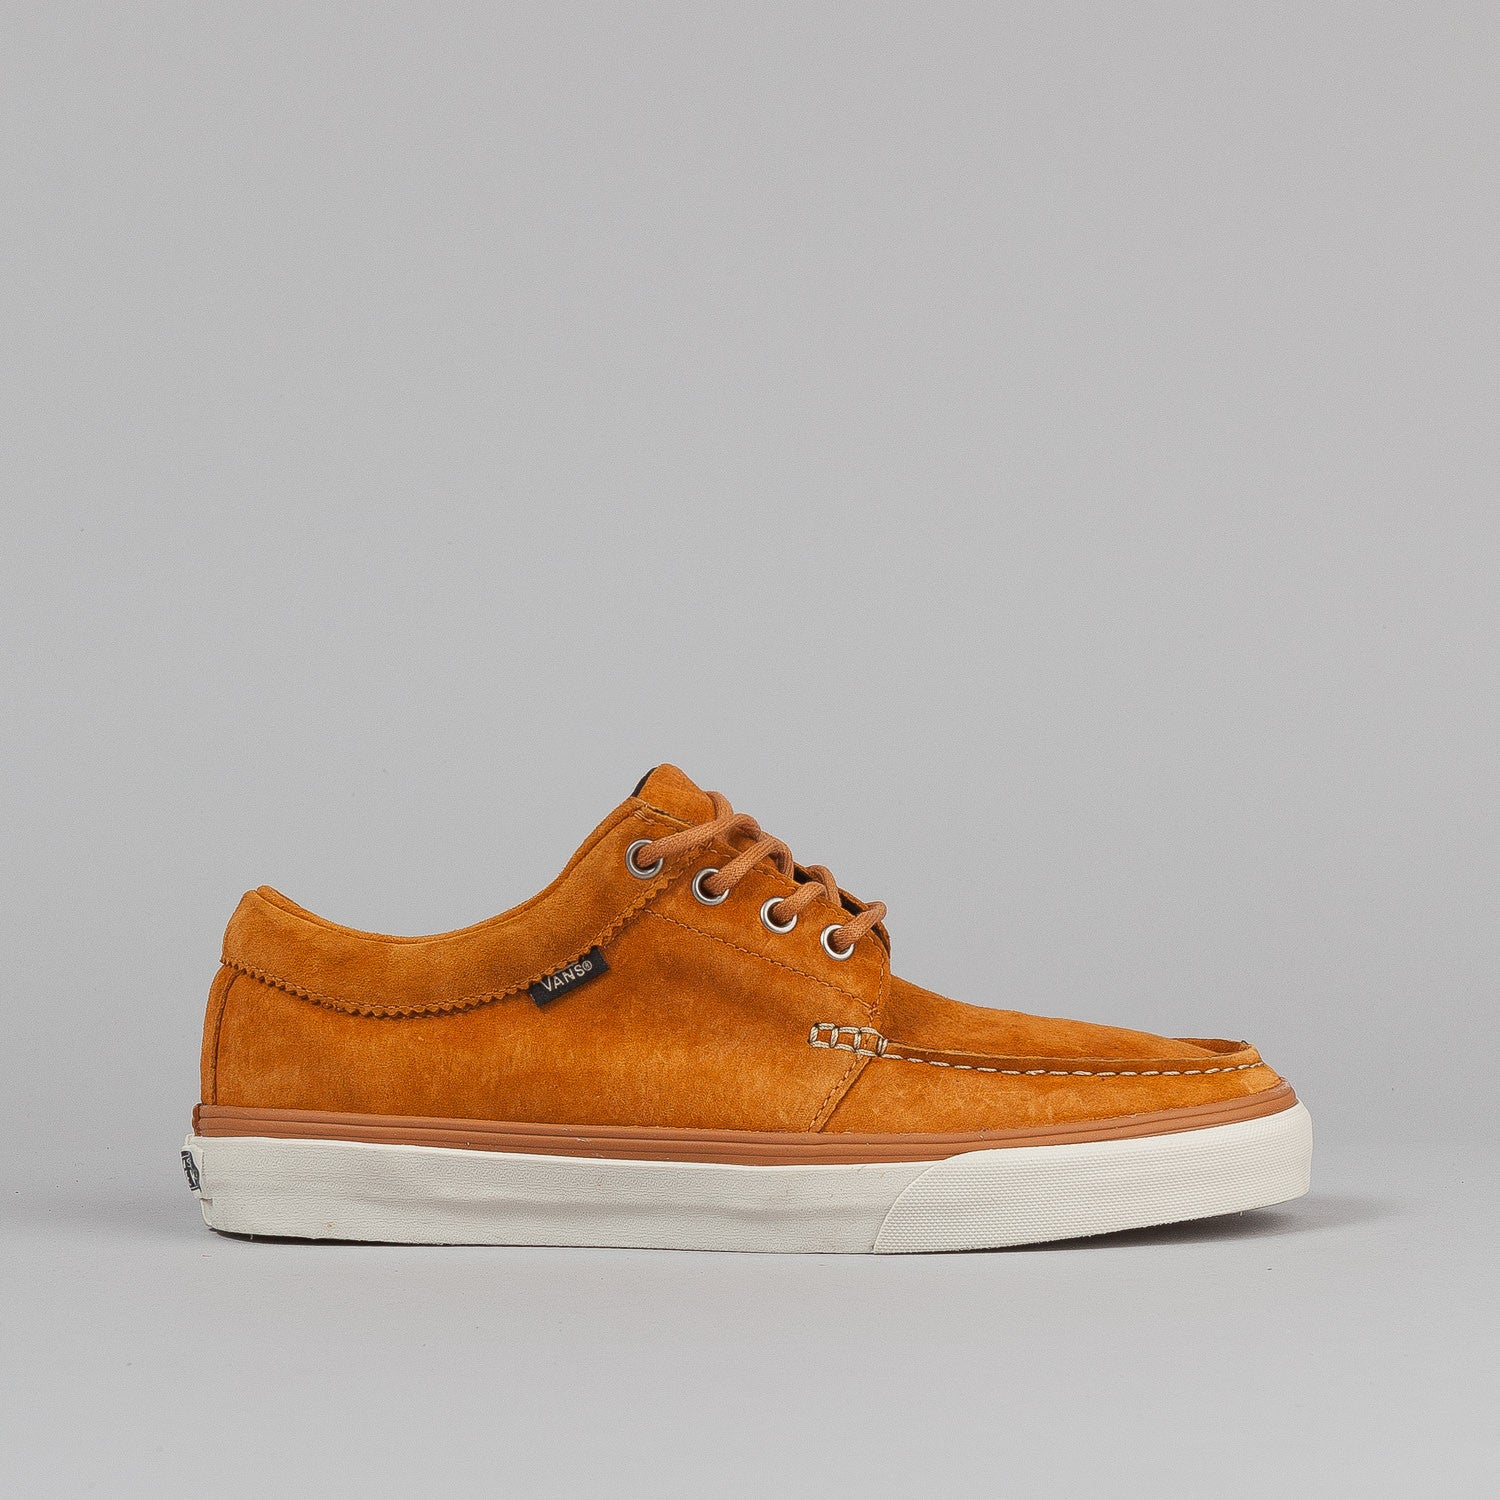 Vans 106 Moc CA Shoes